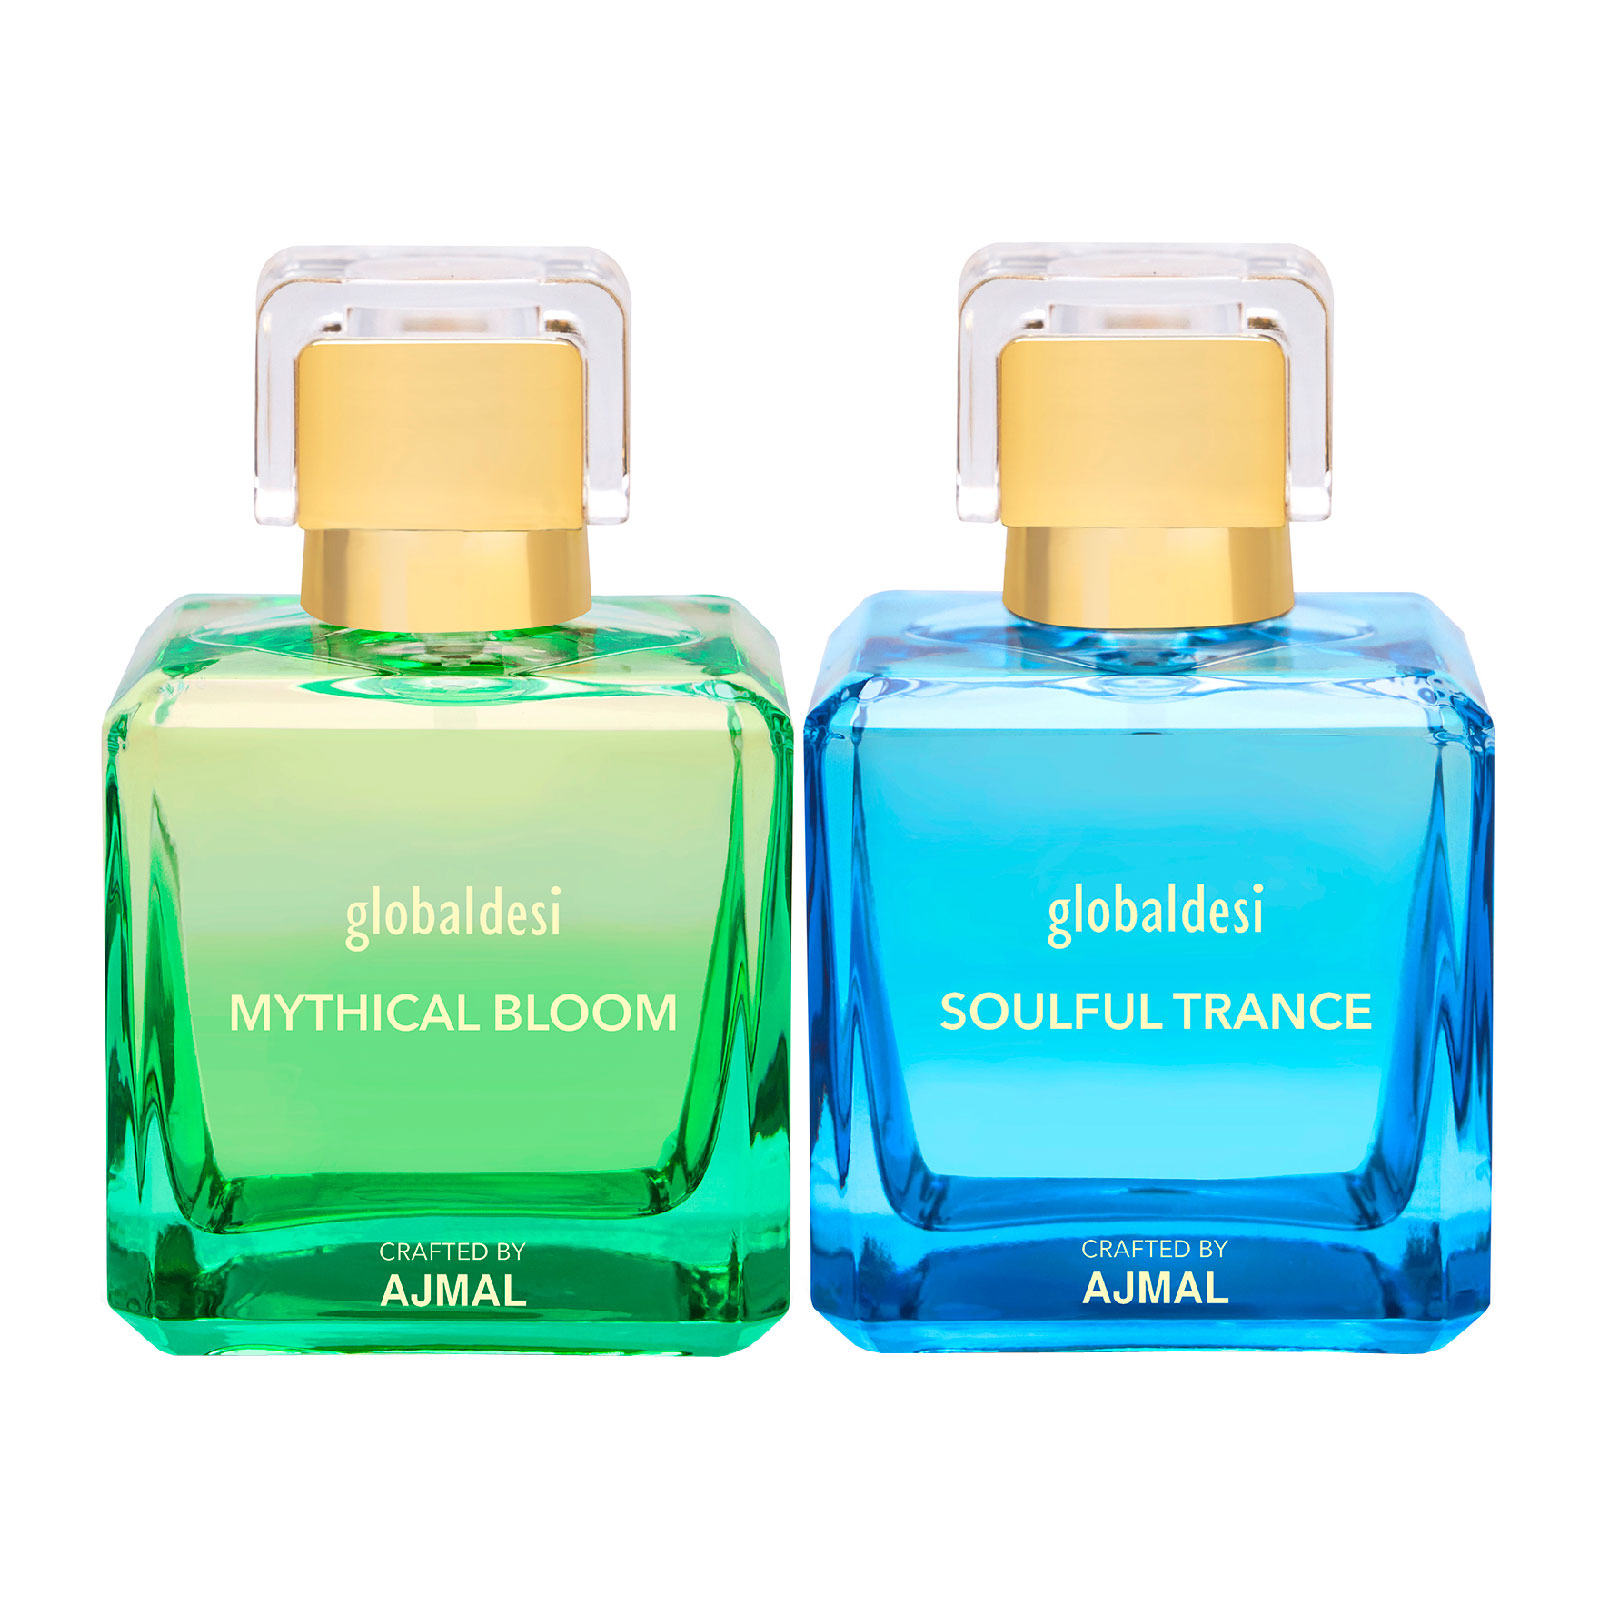 Global Desi Crafted By Ajmal | Global Mythical Bloom & Soulful Trance Pack of 2 Eau De Parfum 100ML for Women Crafted by Ajmal + 2 Parfum Testers